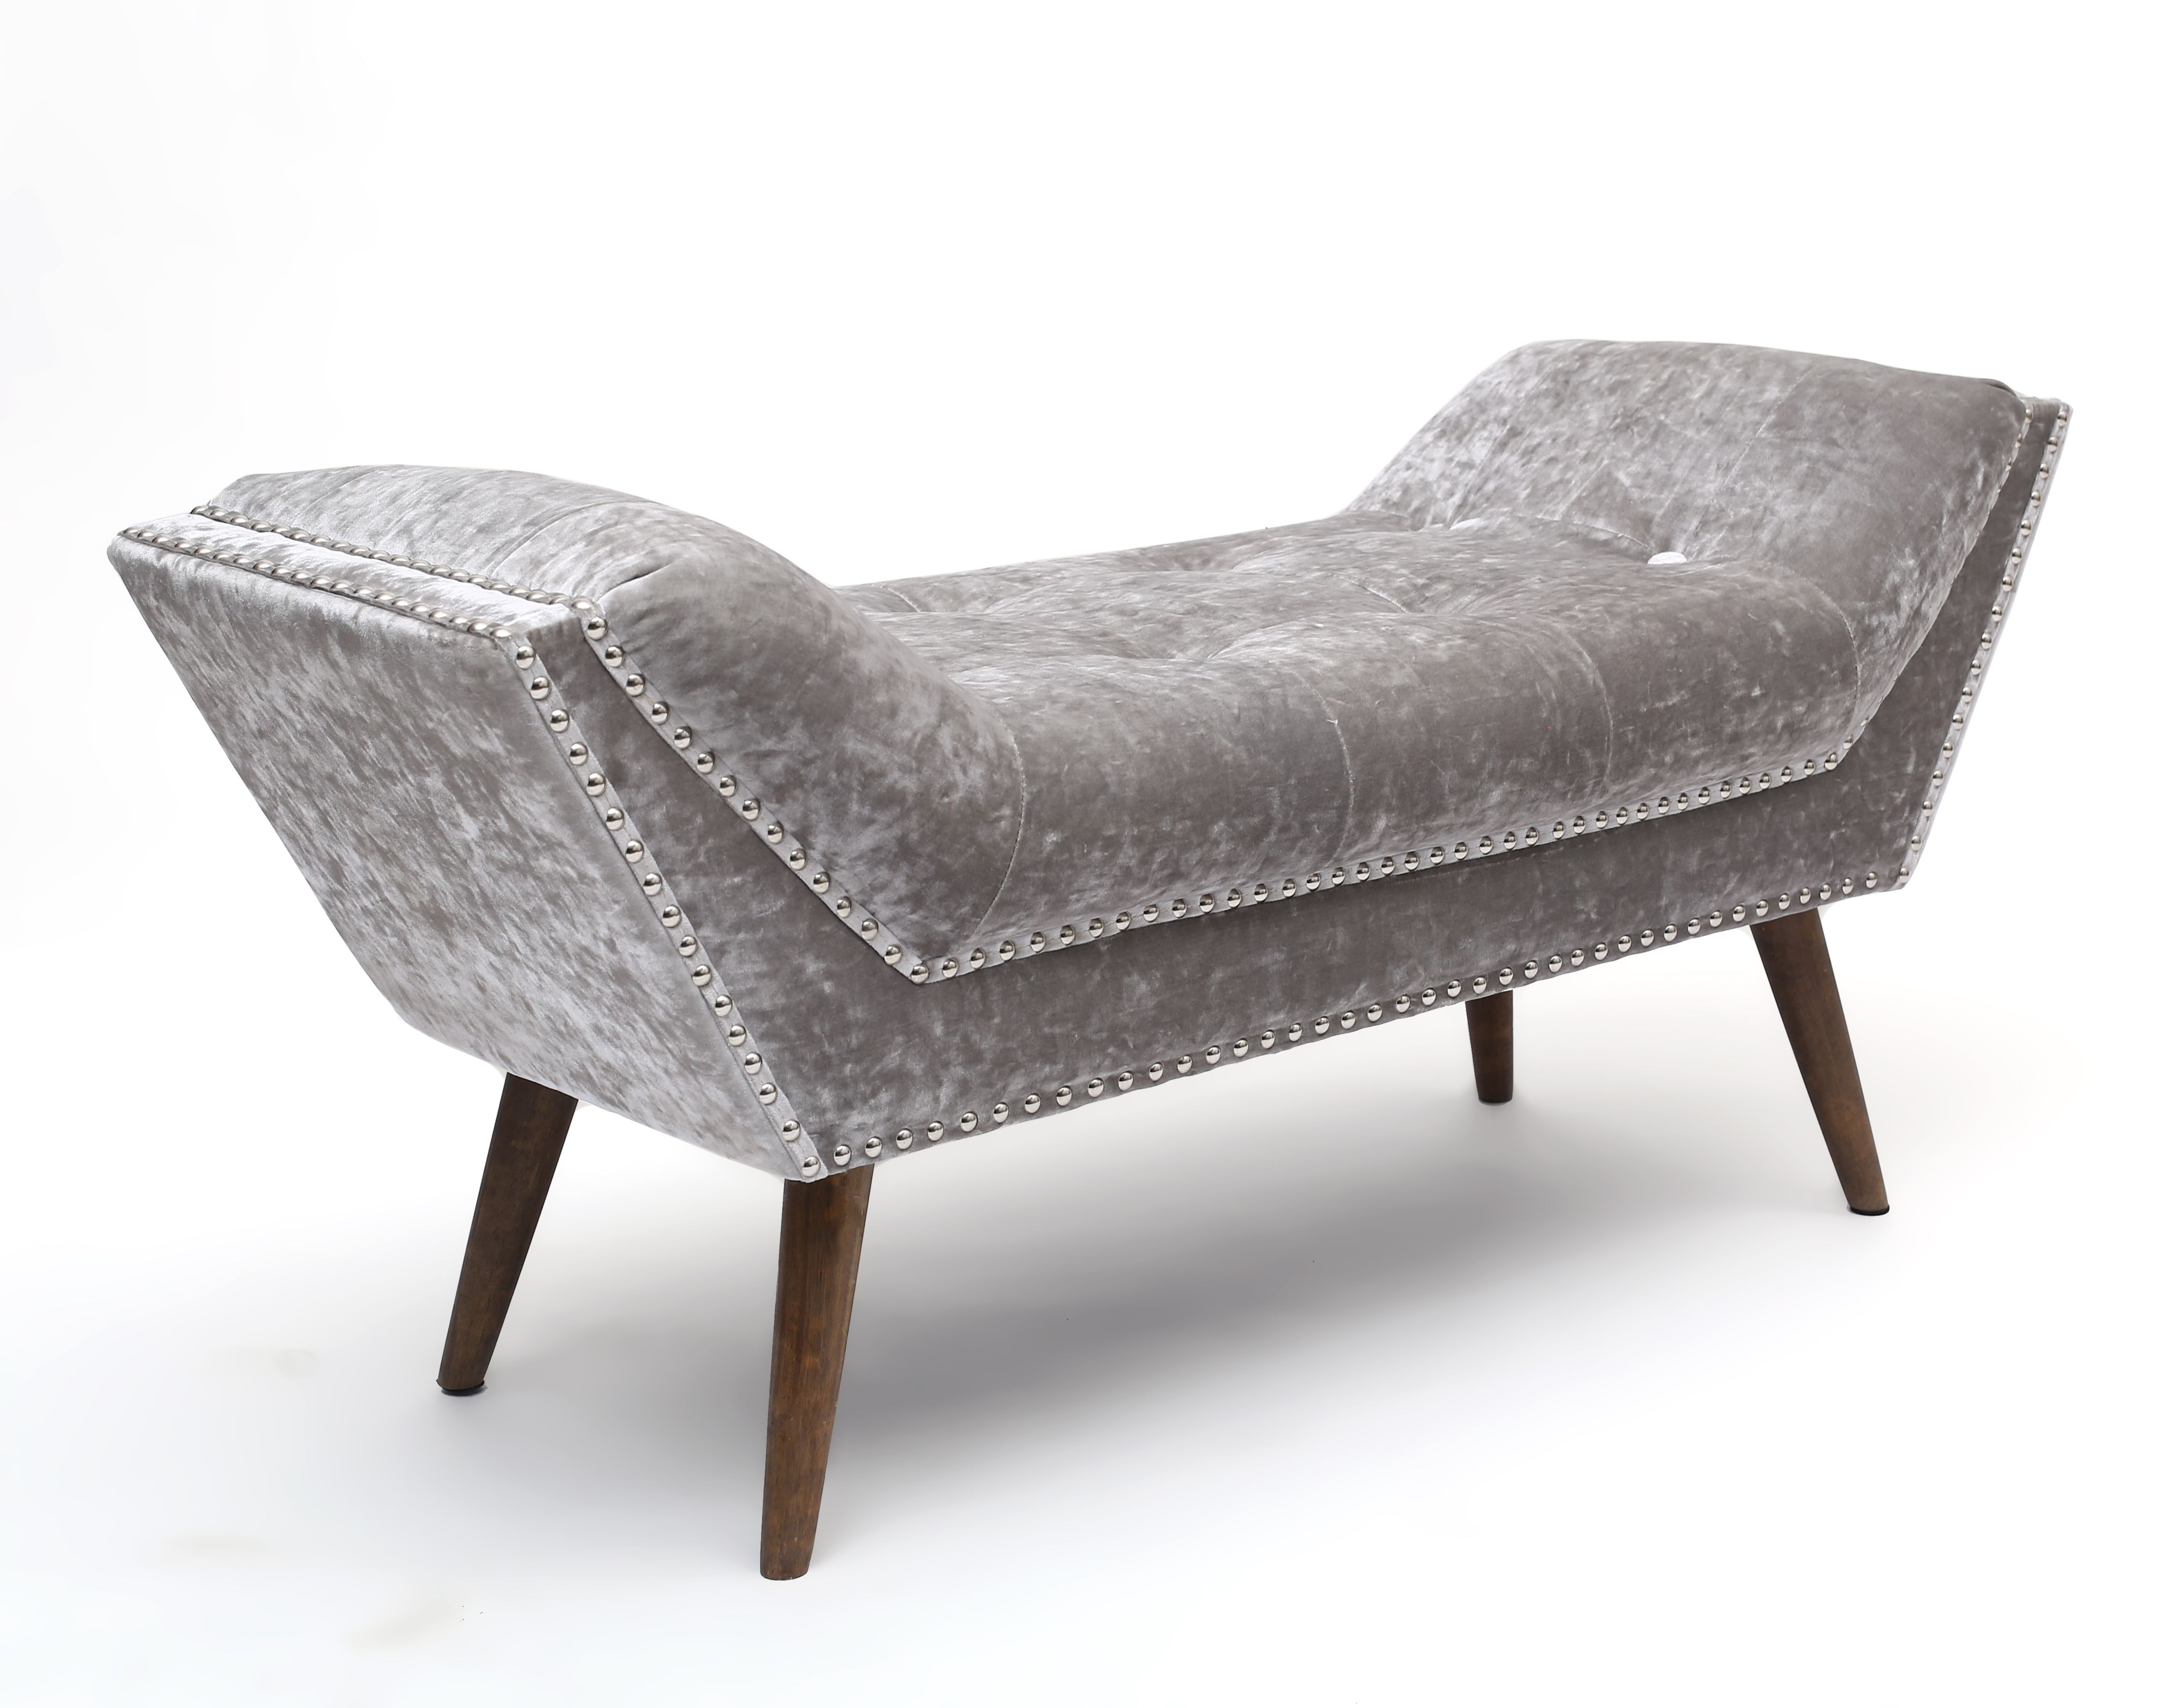 The Mulberry Crushed Velvet Chaise Is A Funky Style Seating Solution With Distinctly